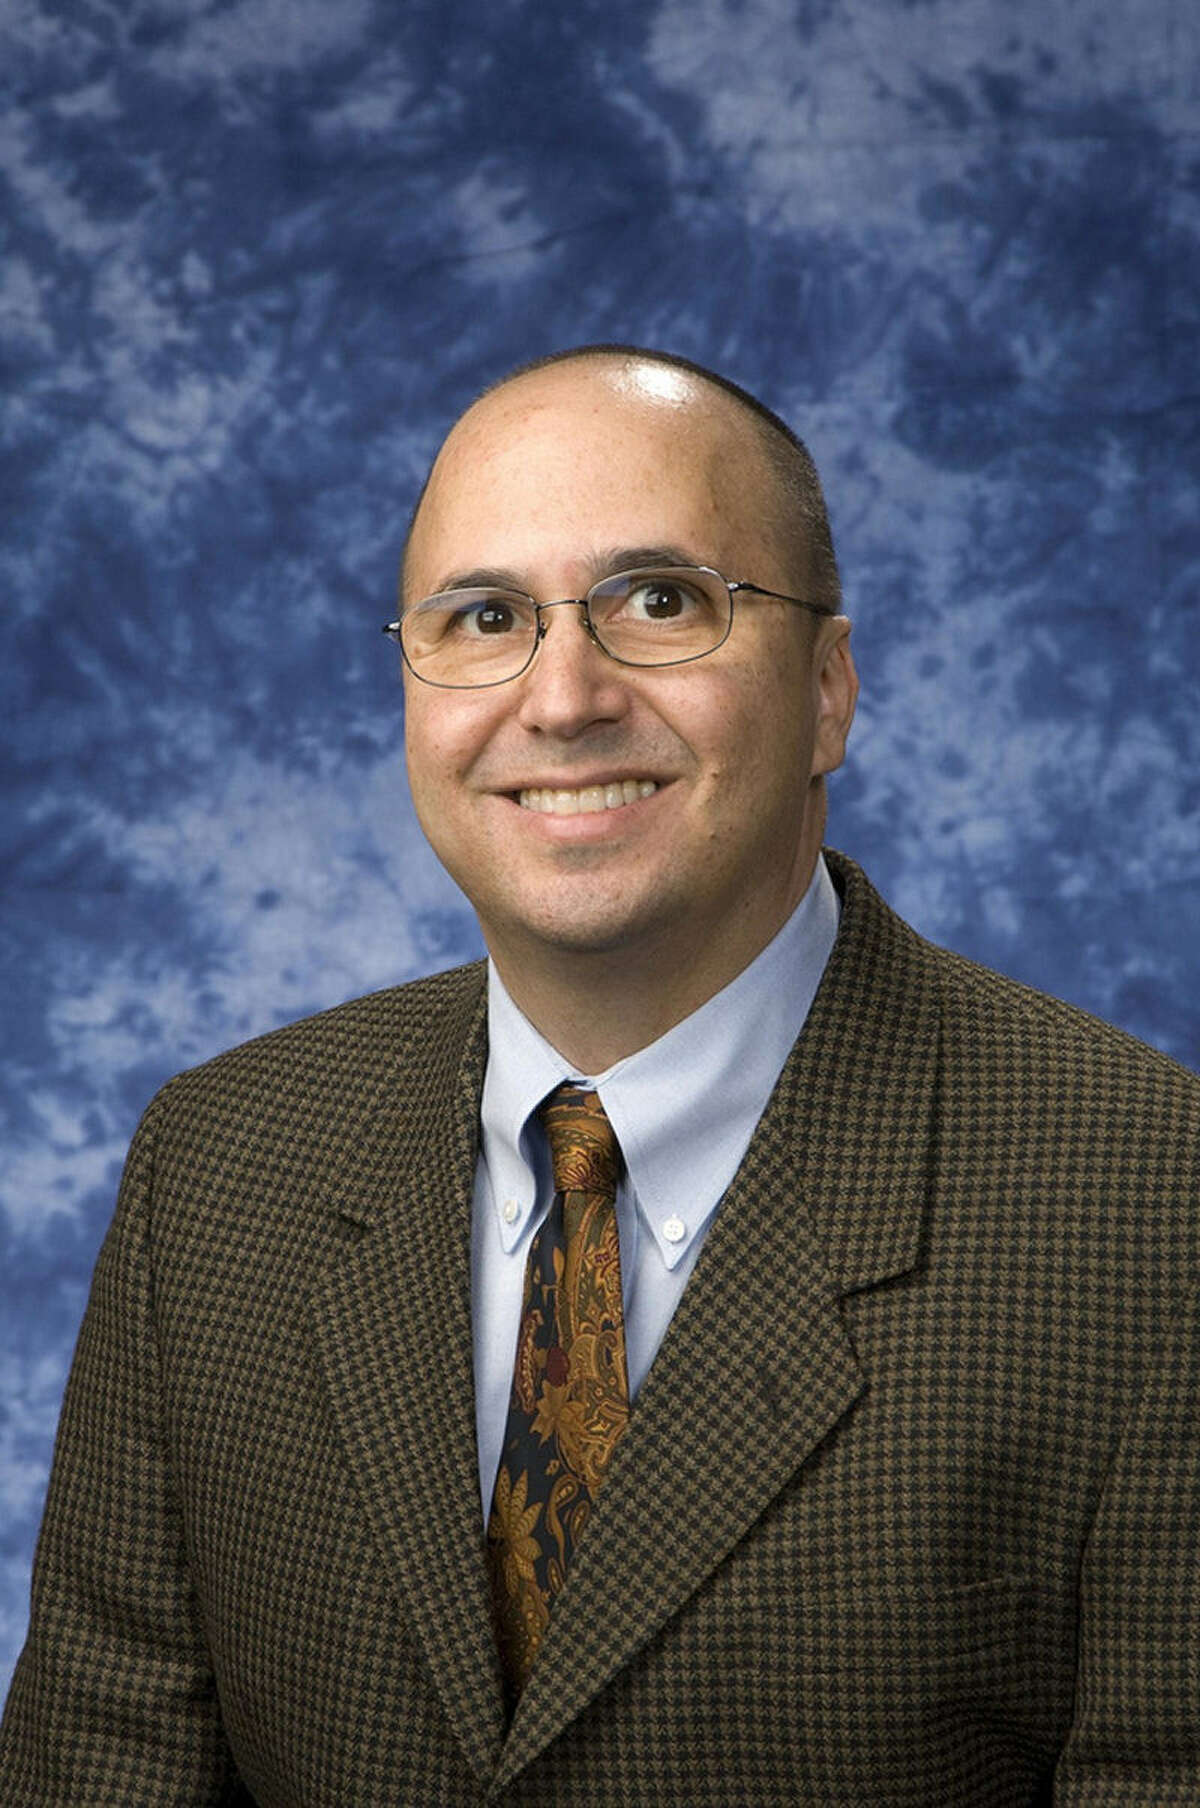 Andrew E. Dressler is a professor of atmospheric sciences at Texas A&M.